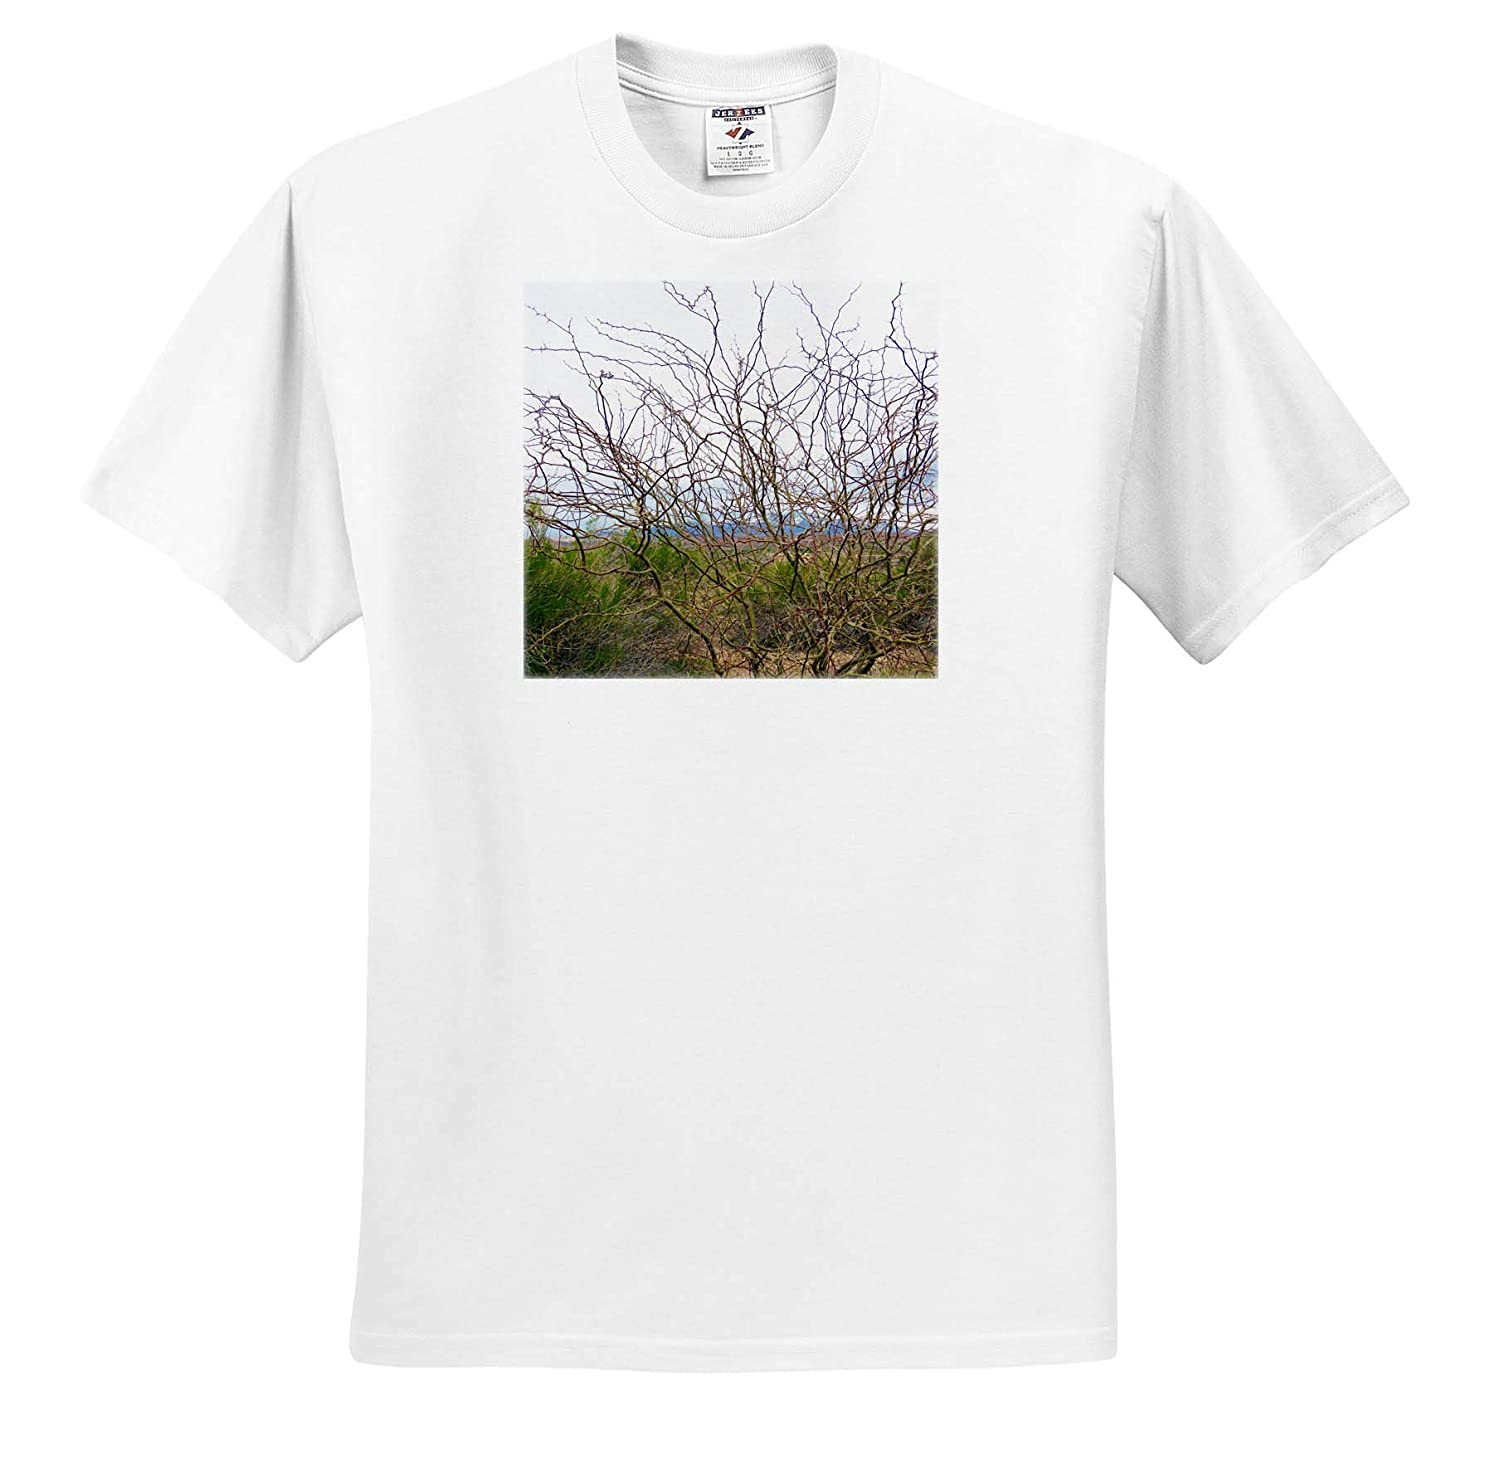 3dRose Jos Fauxtographee- Bush ts/_320272 Adult T-Shirt XL A Barren Bush with squiggly Branches and red Ends with Thorns